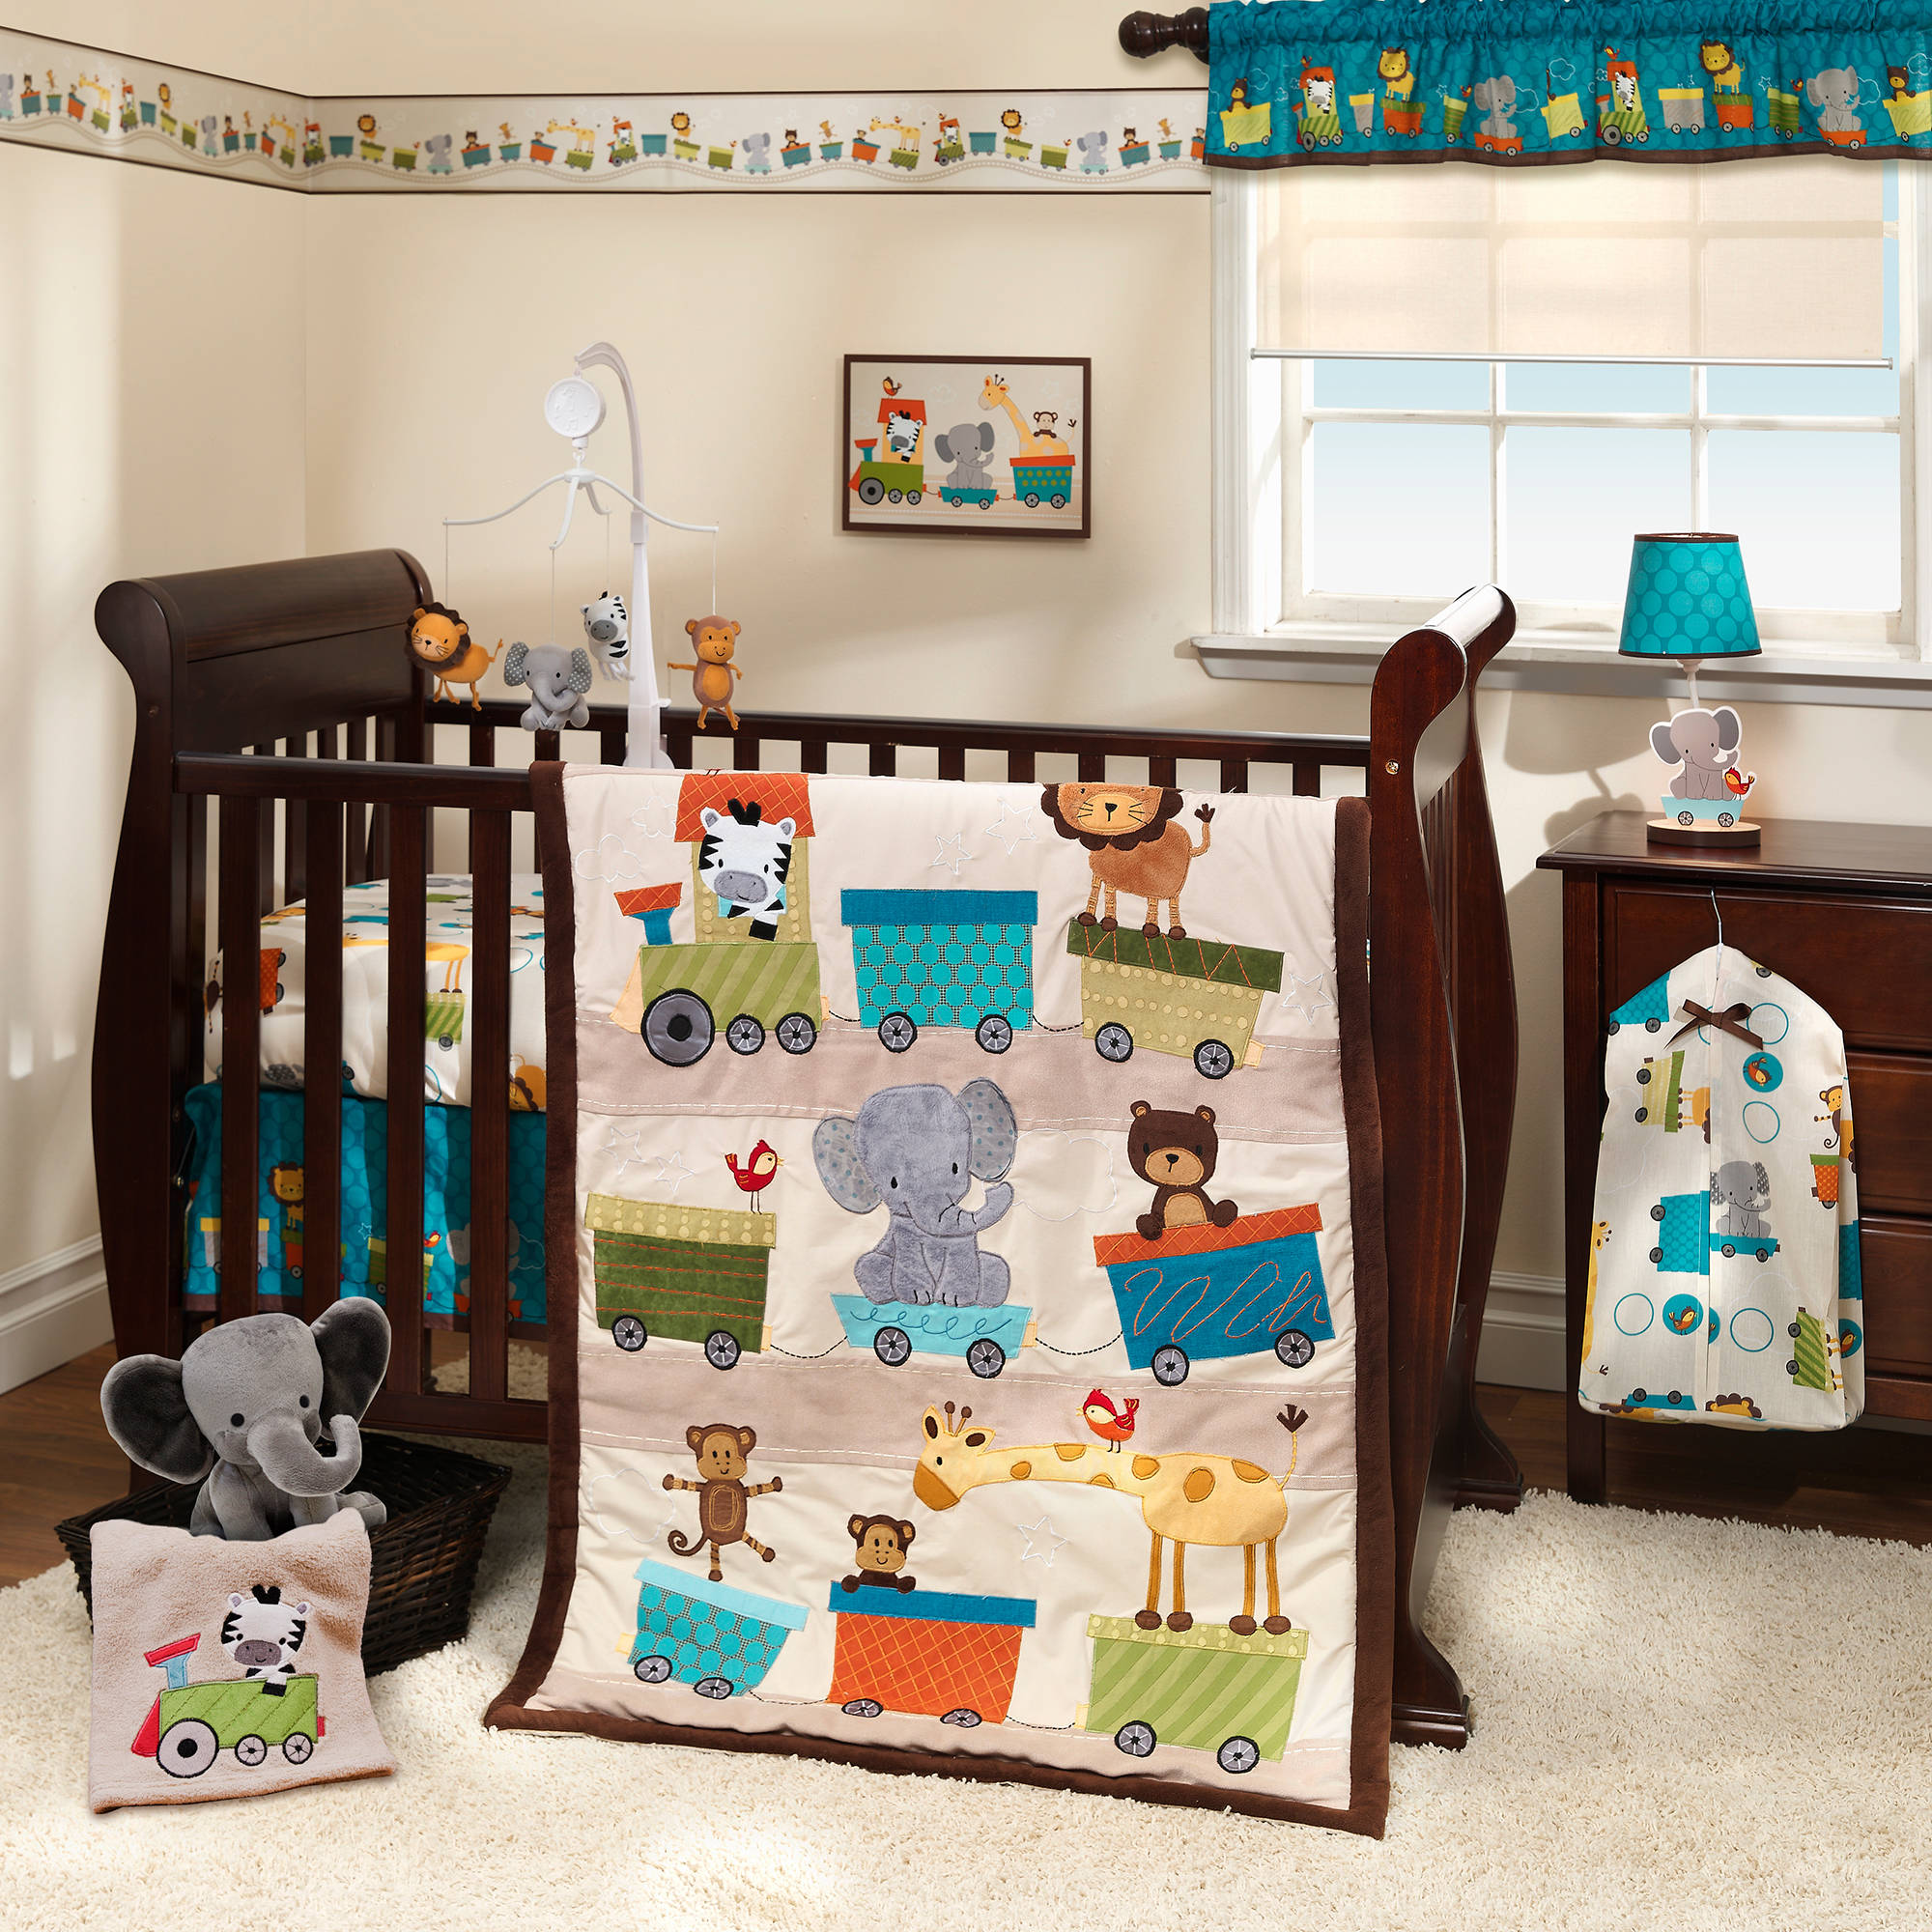 Lambs & Ivy Bedtime Originals Animal Choo Choo Express 3-Piece Crib Set